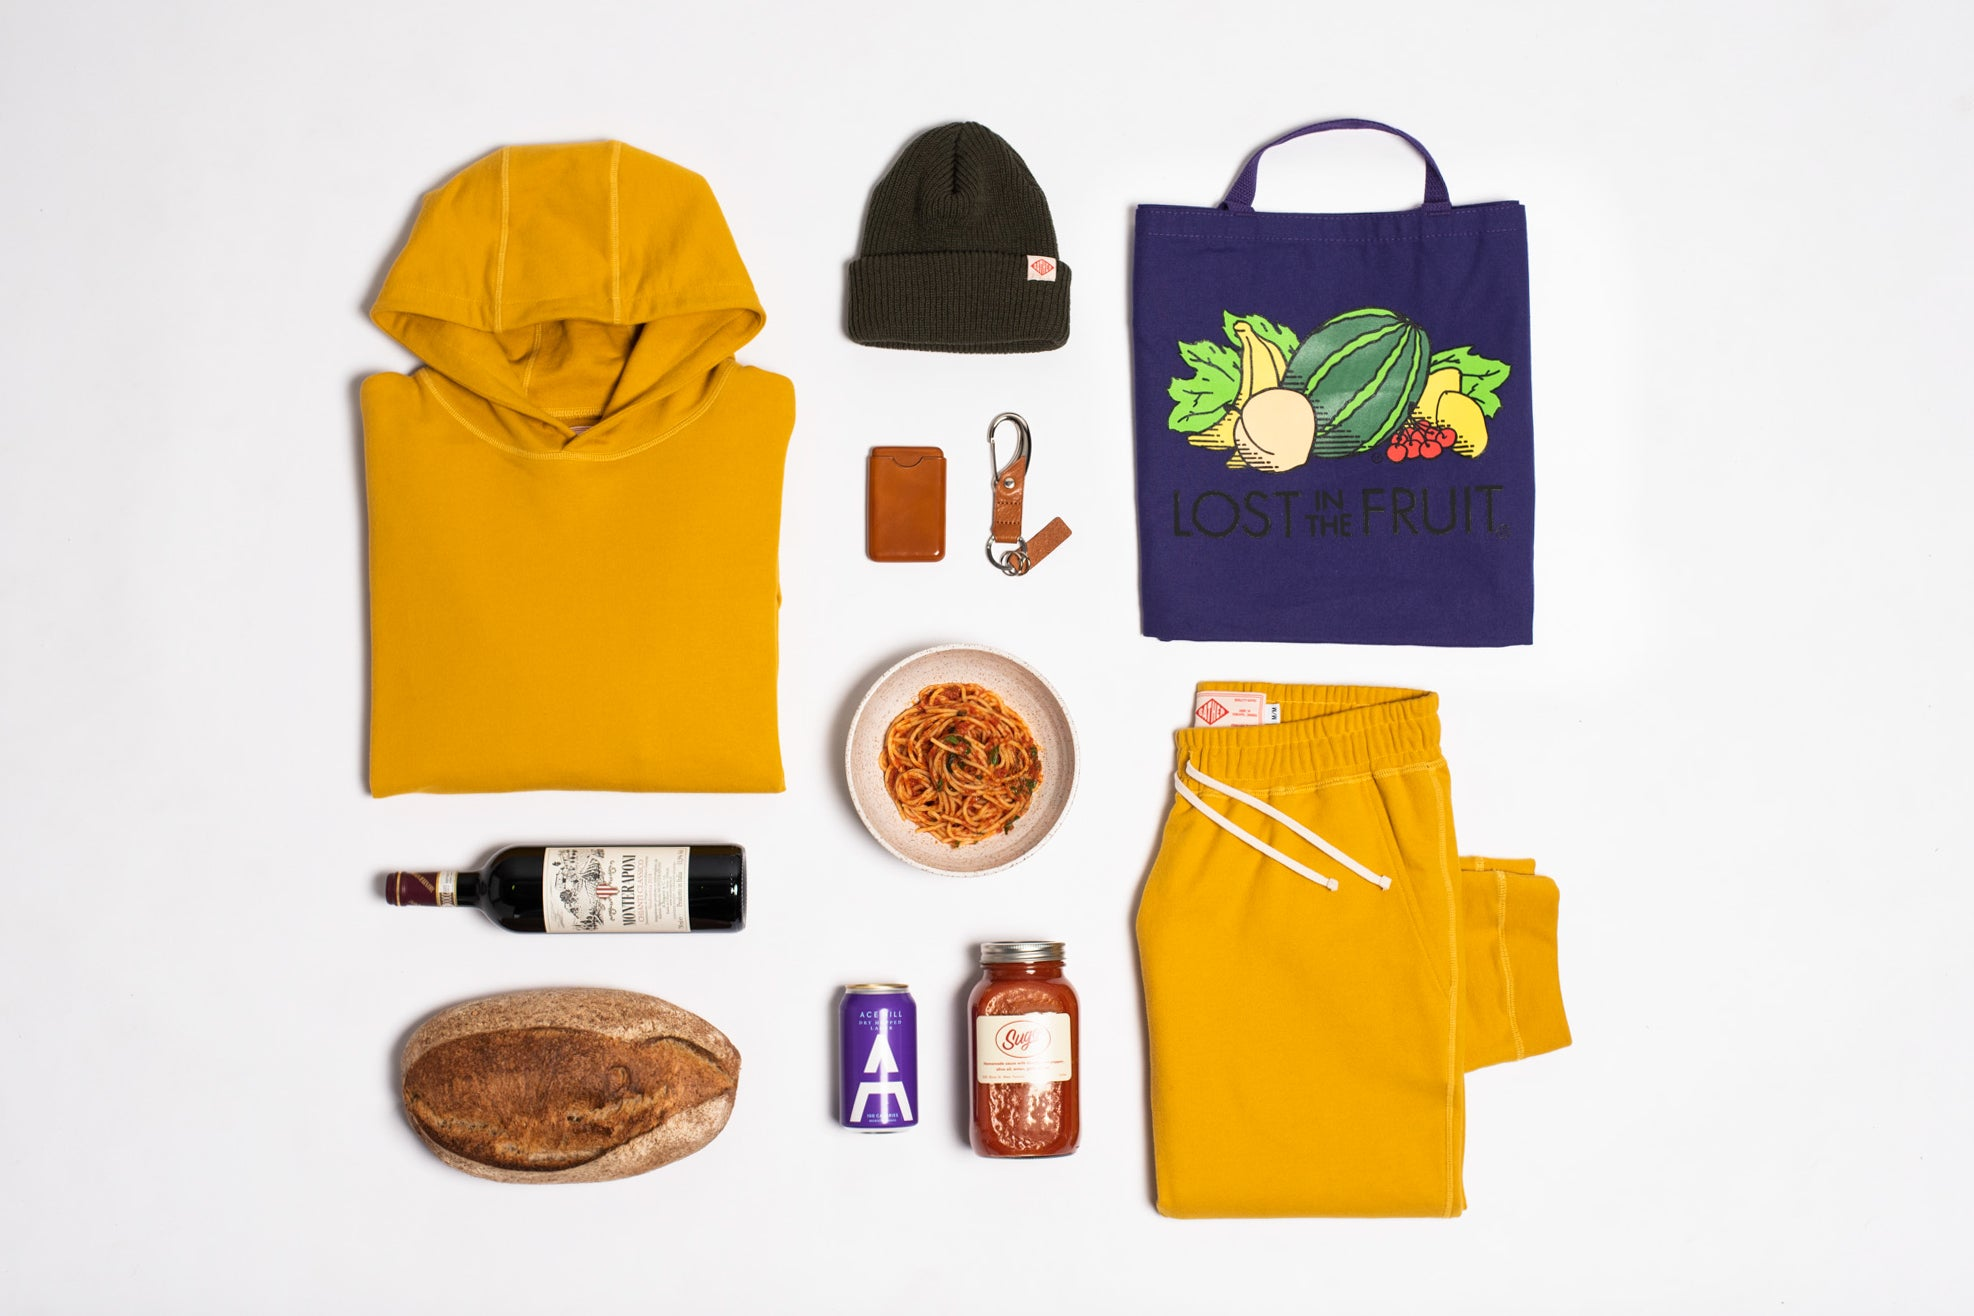 Flat lay image of our Bodega Benefactor gift guide items